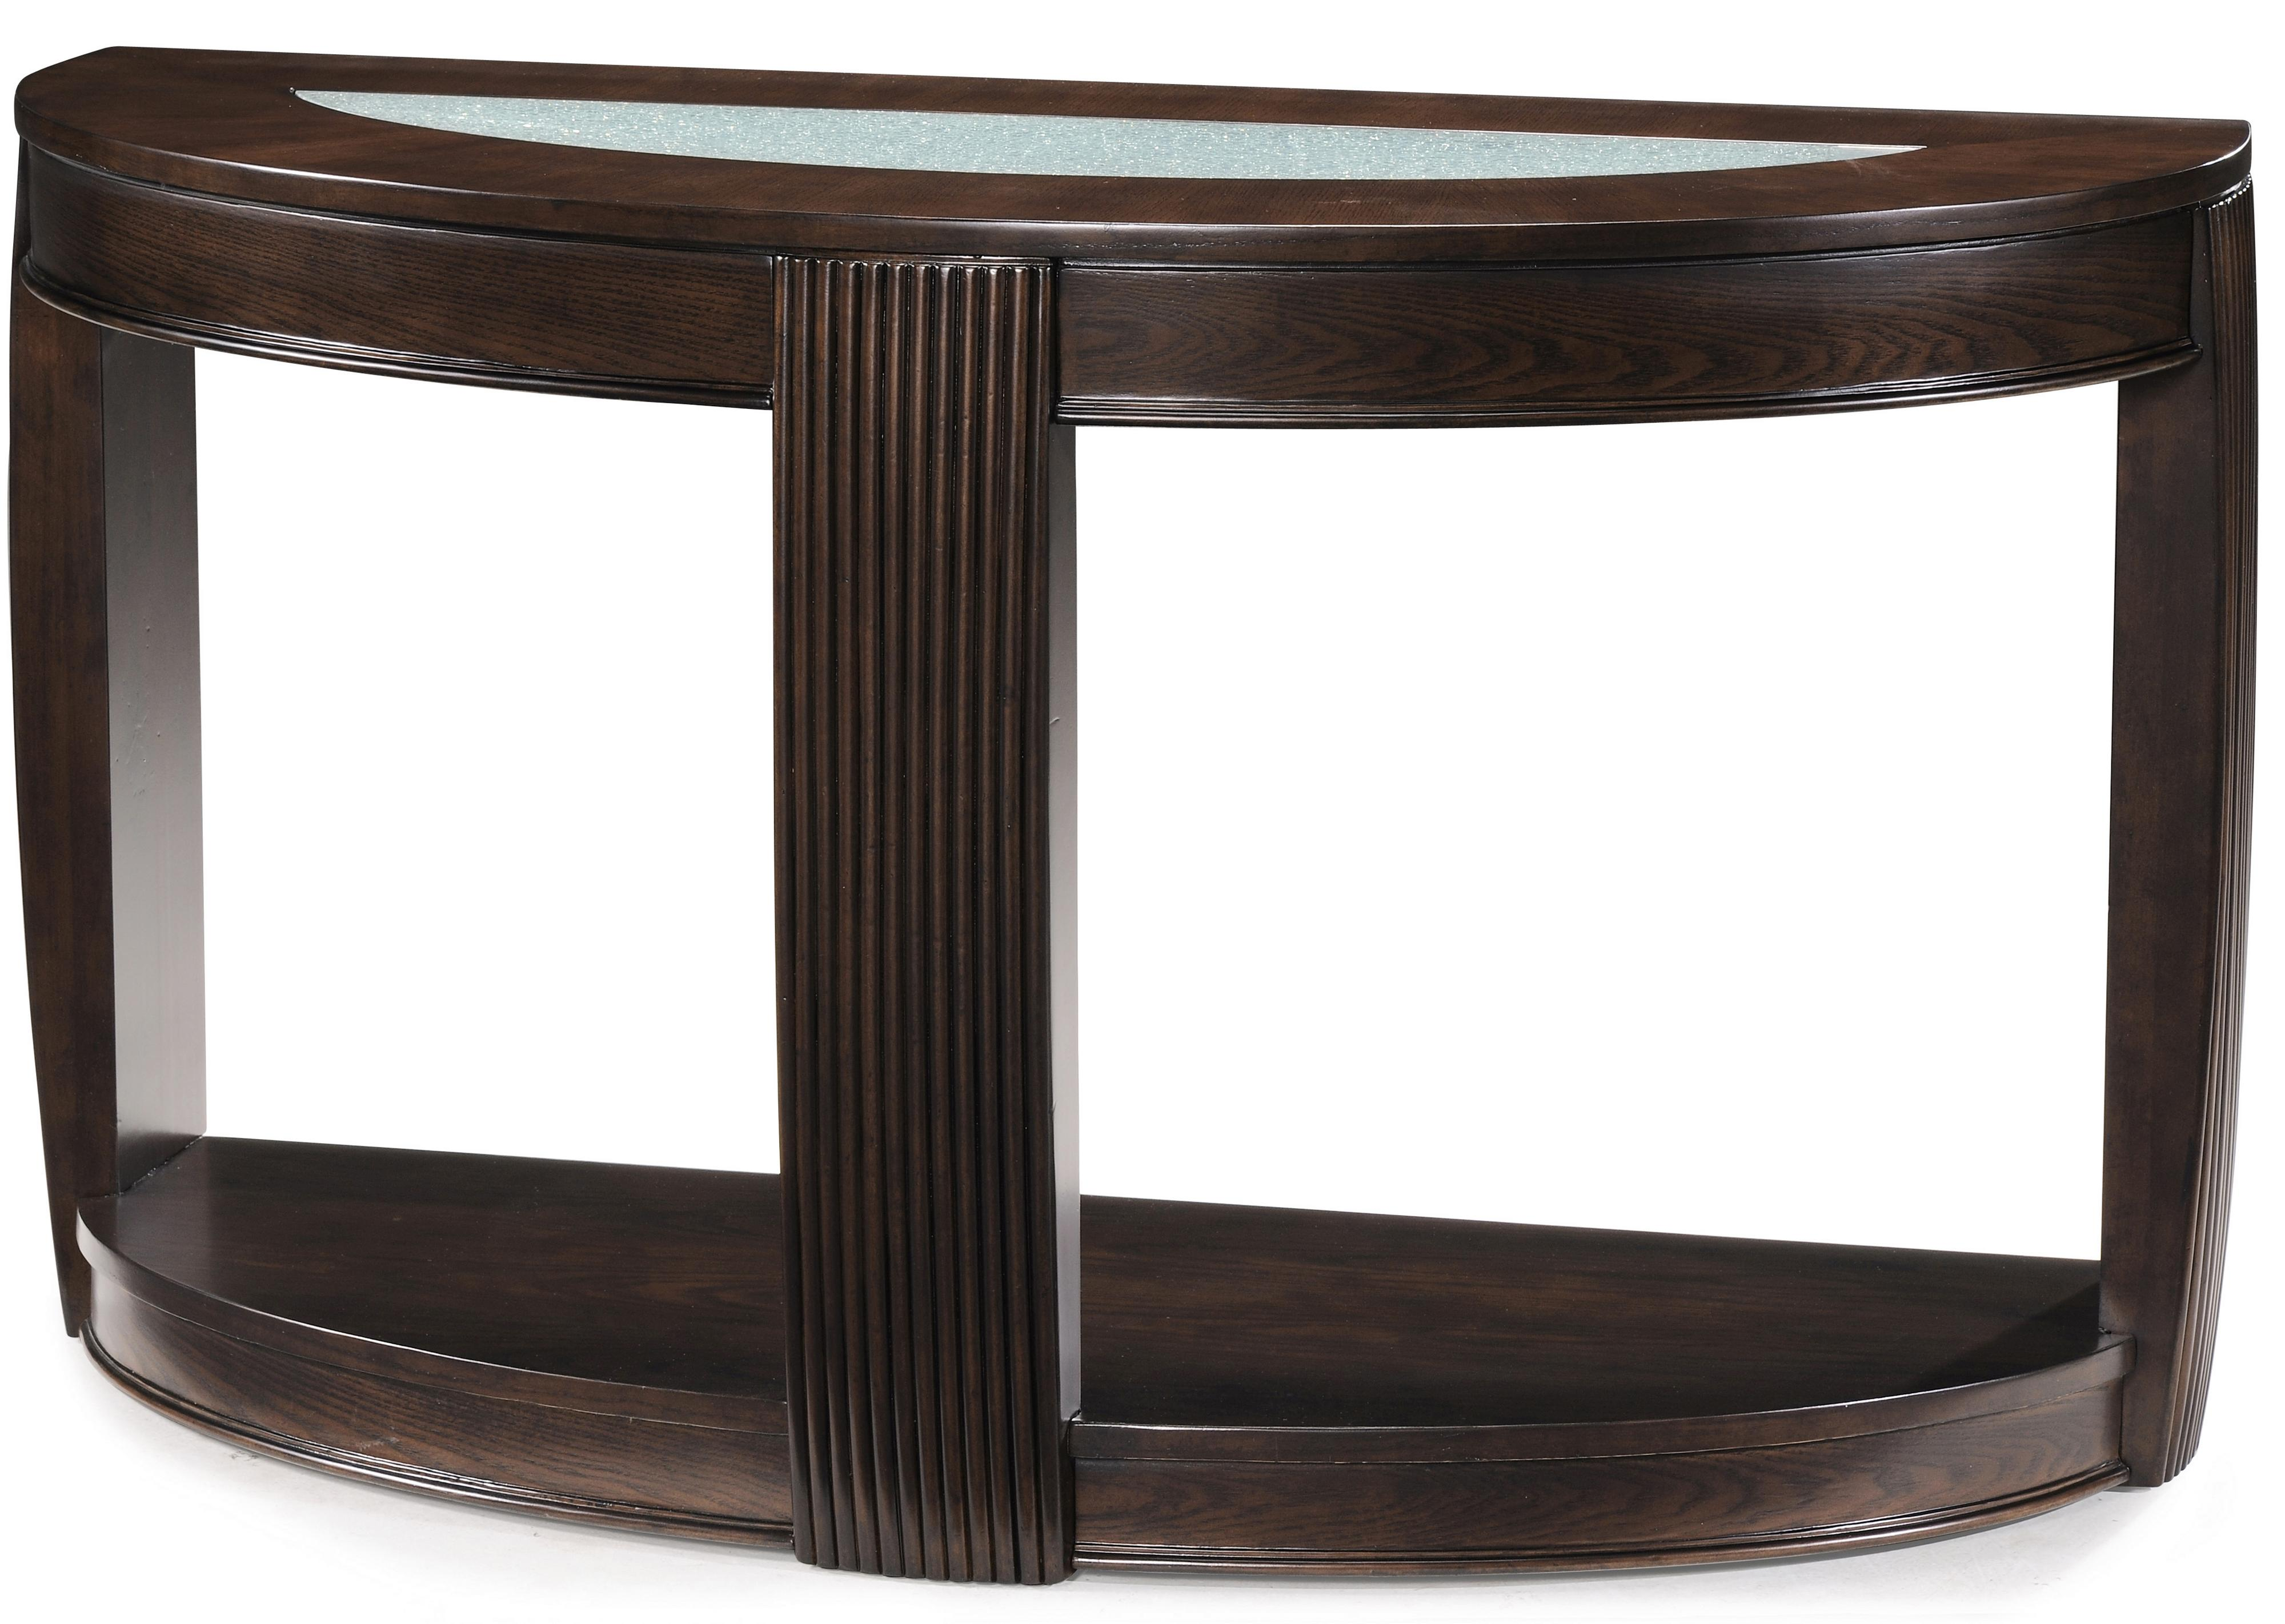 Demilune console table w glass insert by magnussen home wolf demilune console table w glass insert geotapseo Gallery